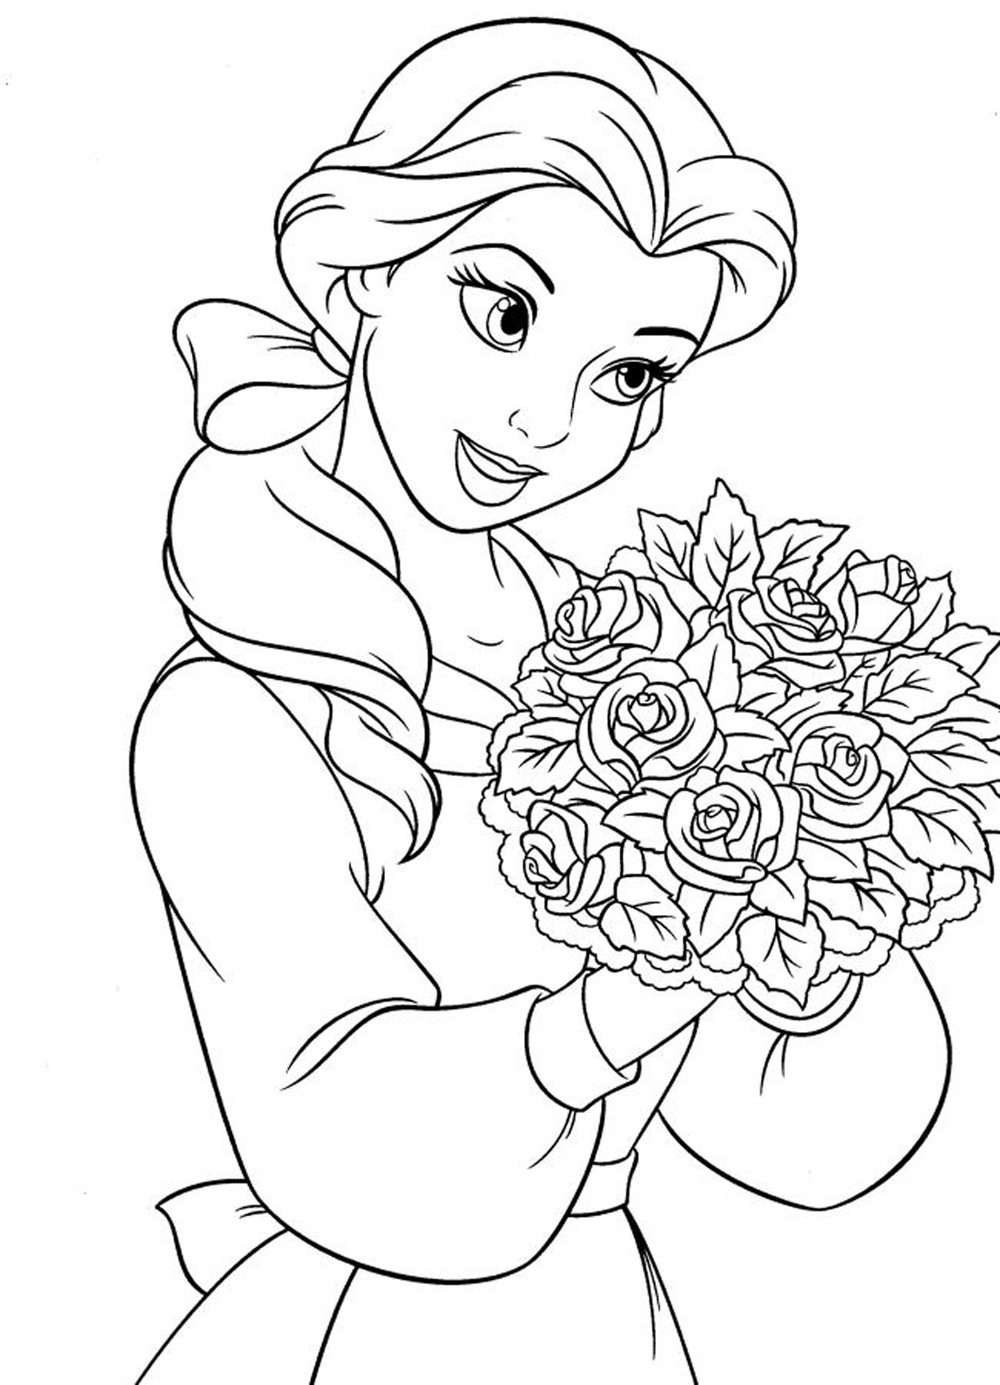 Free Coloring Pages Of Disney Prinzessinnen Coloring Pages Disney